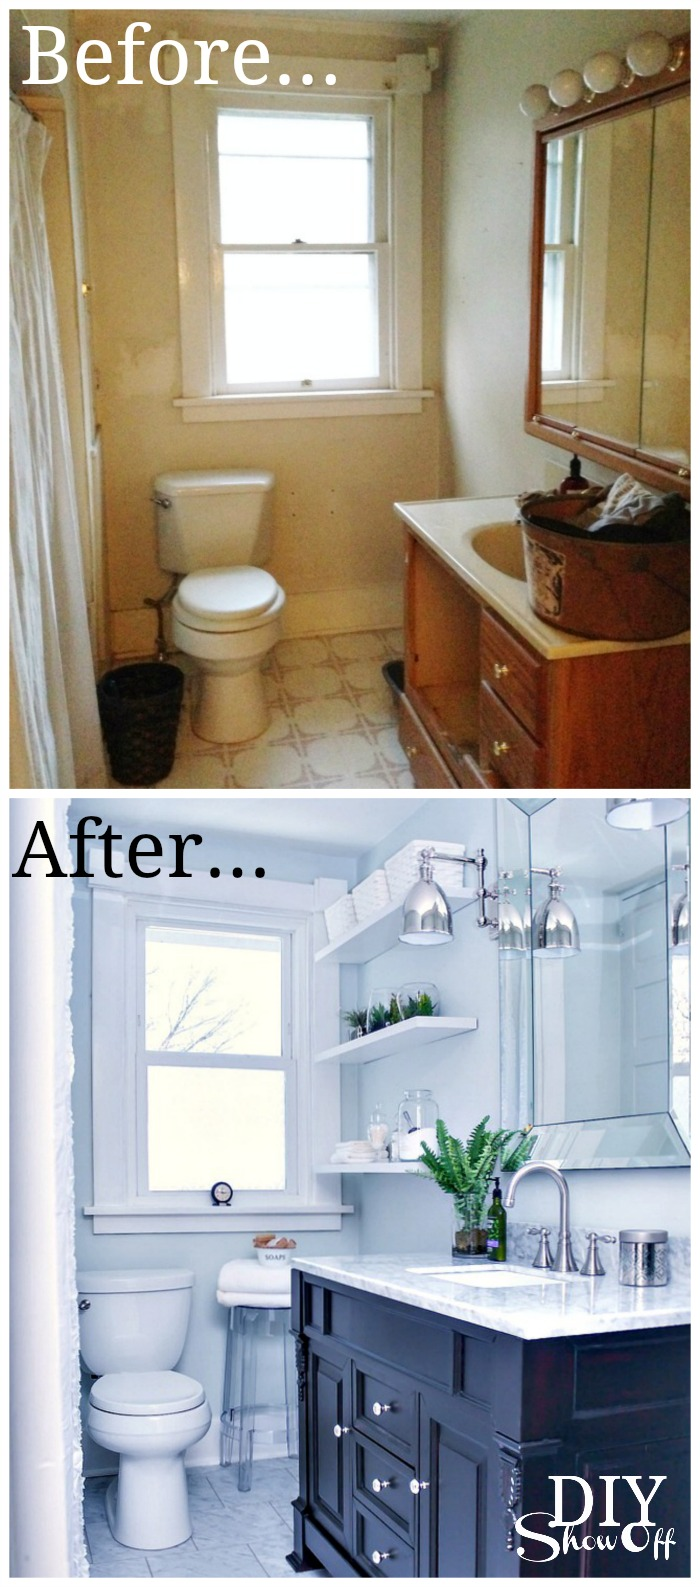 Bathroom Before And After Diy Show Off Diy Decorating And Home Improvement Blogdiy Show